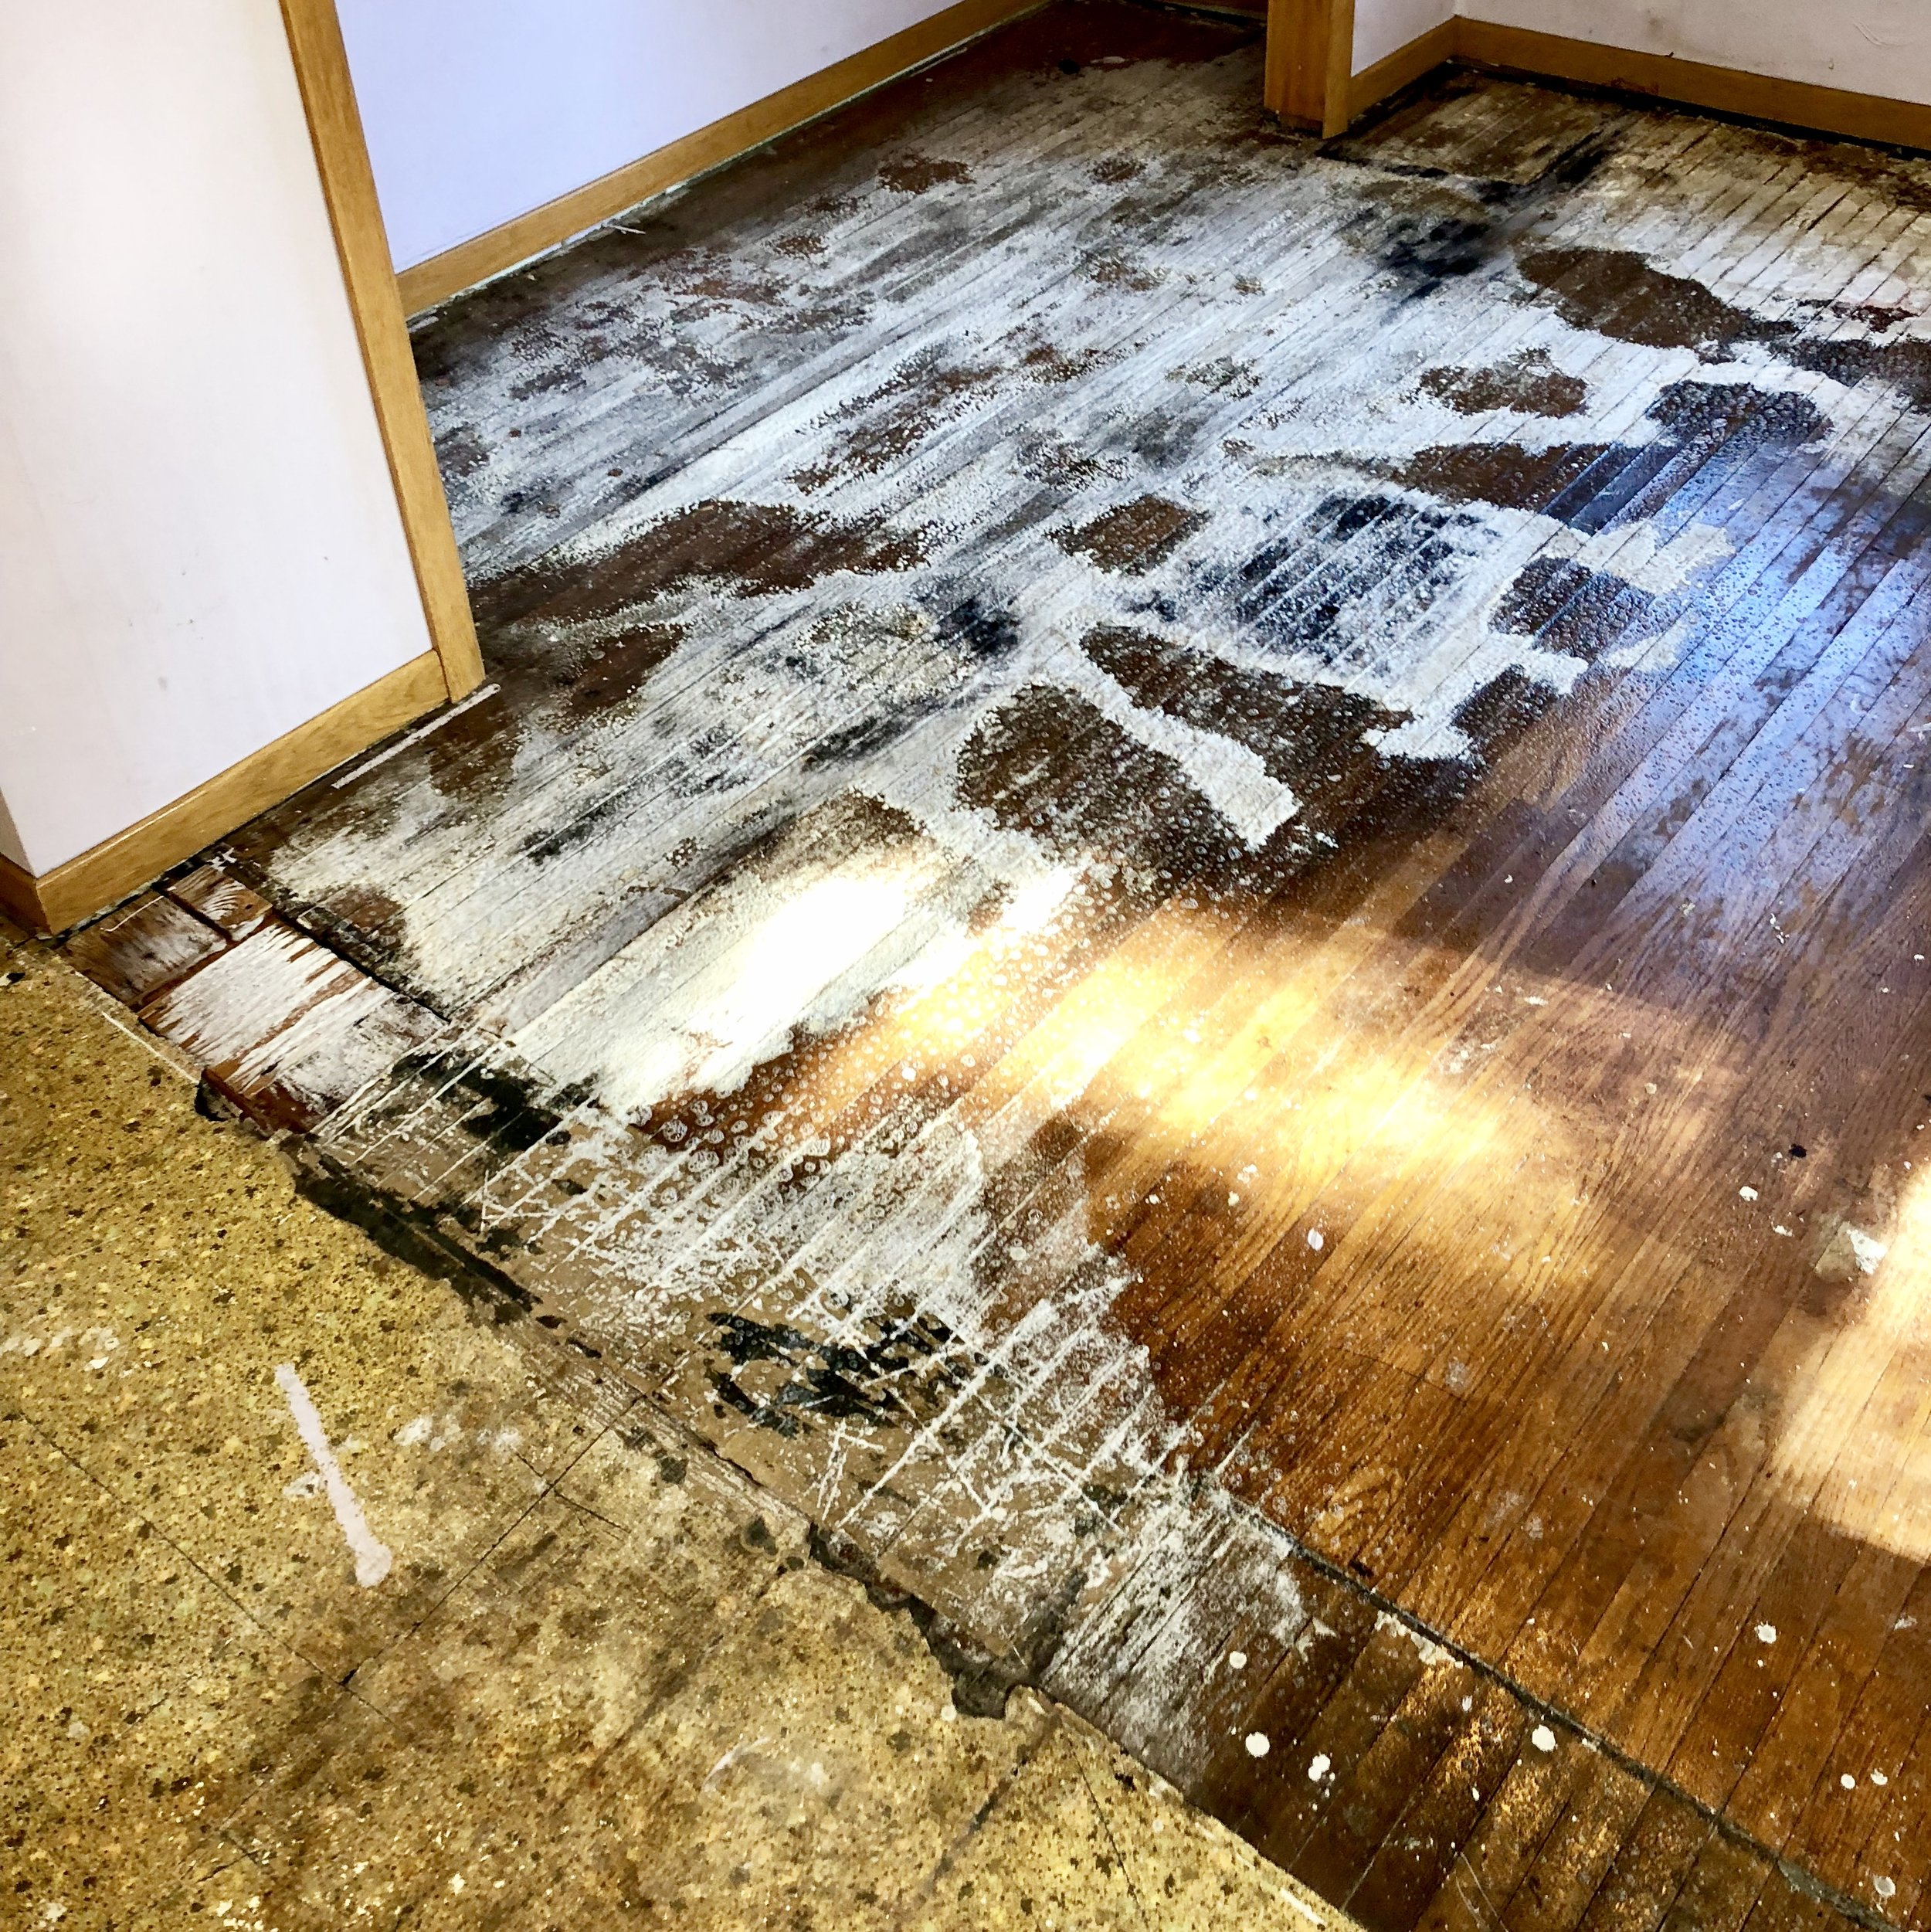 Biosweep in action. - Check out our oxidative cleanser foaming cat urine out of a soiled floor. Material rises to the surface where it oxidizes and is then vacuumed up.